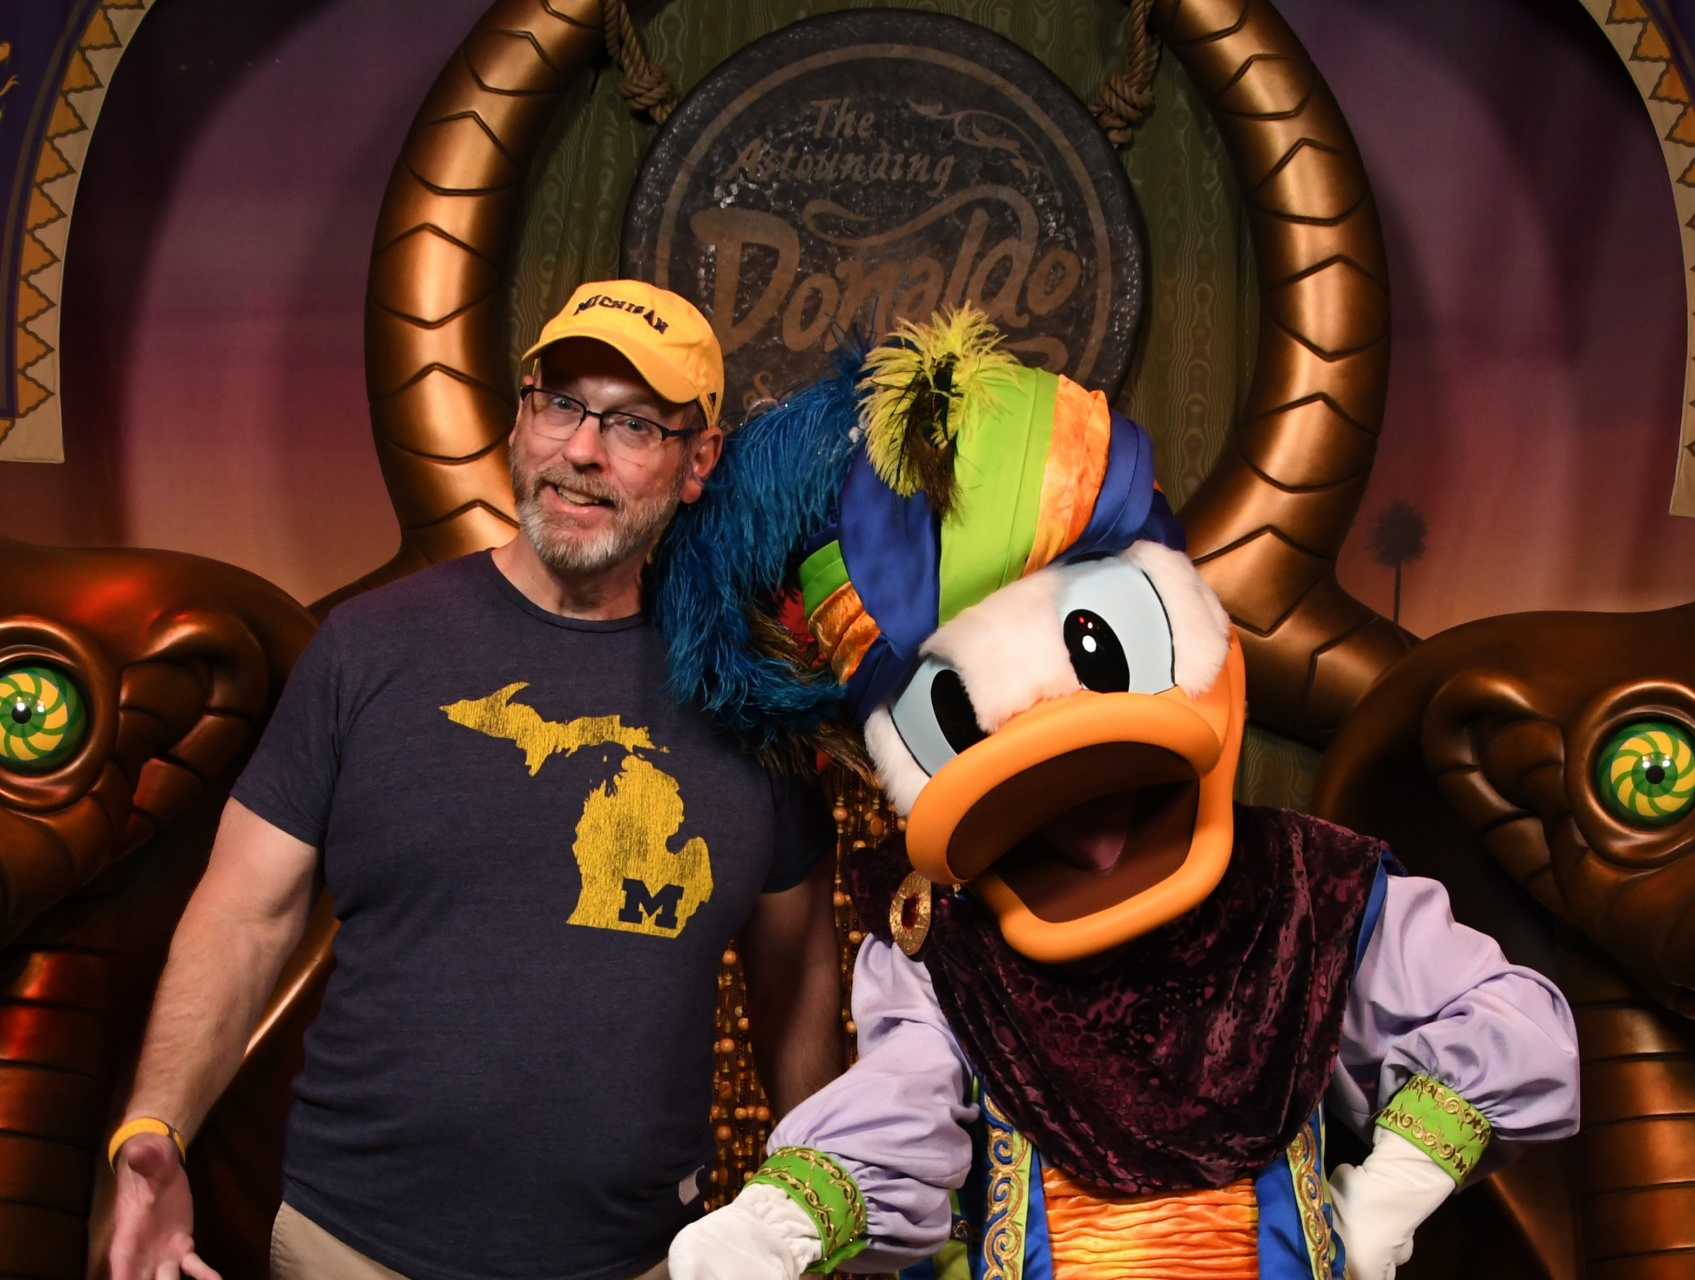 Dave with Donald Duck.